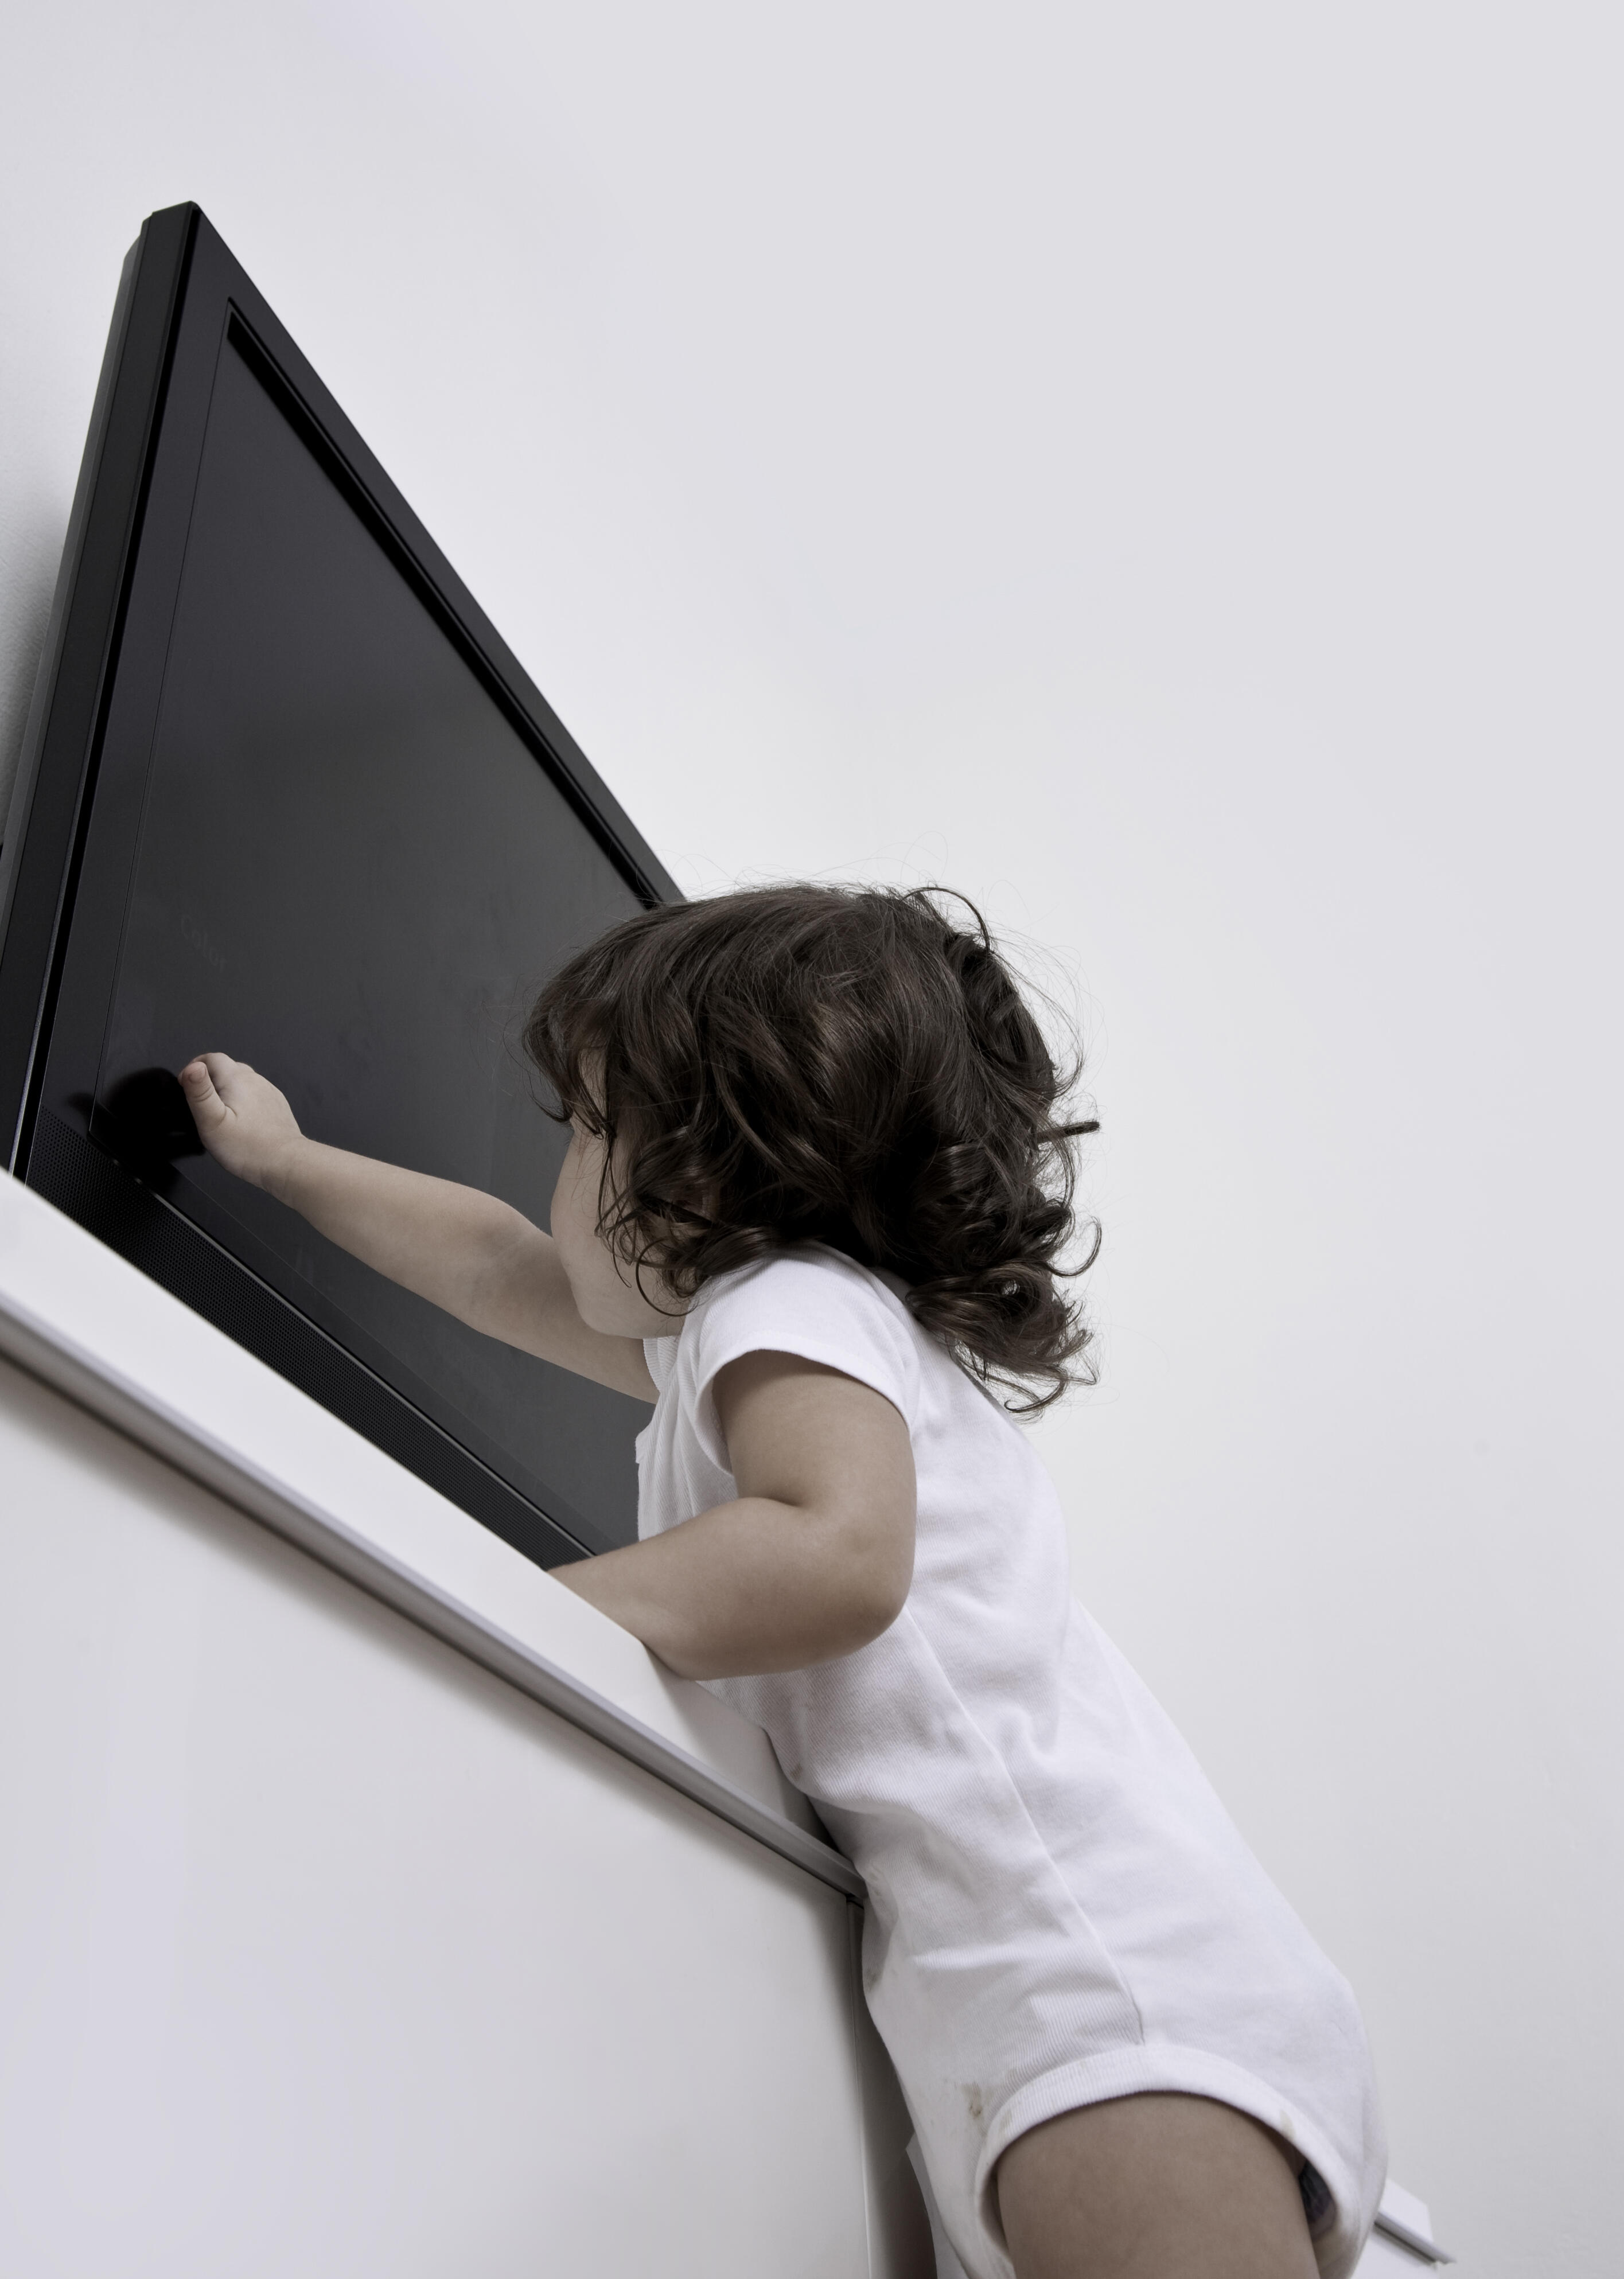 Secure your TV to the wall to help prevent accidents with children and pets.